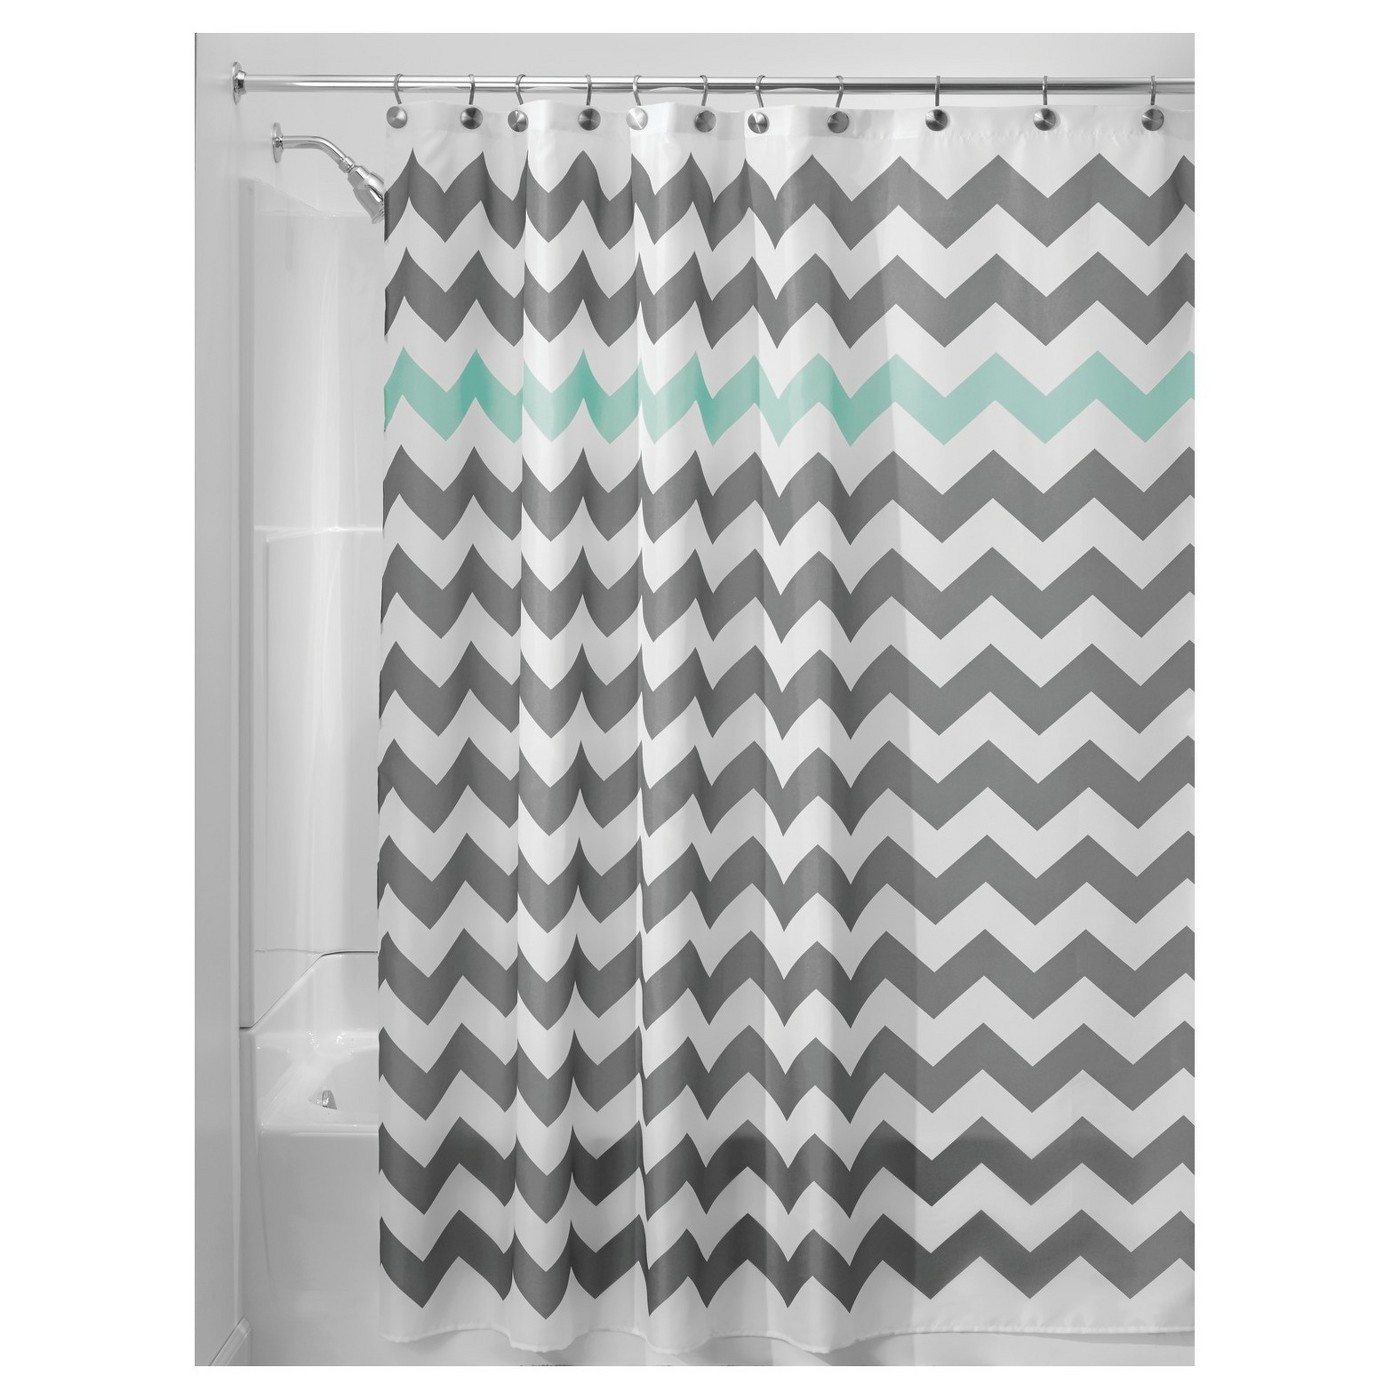 This chevron shower curtain from Target is over